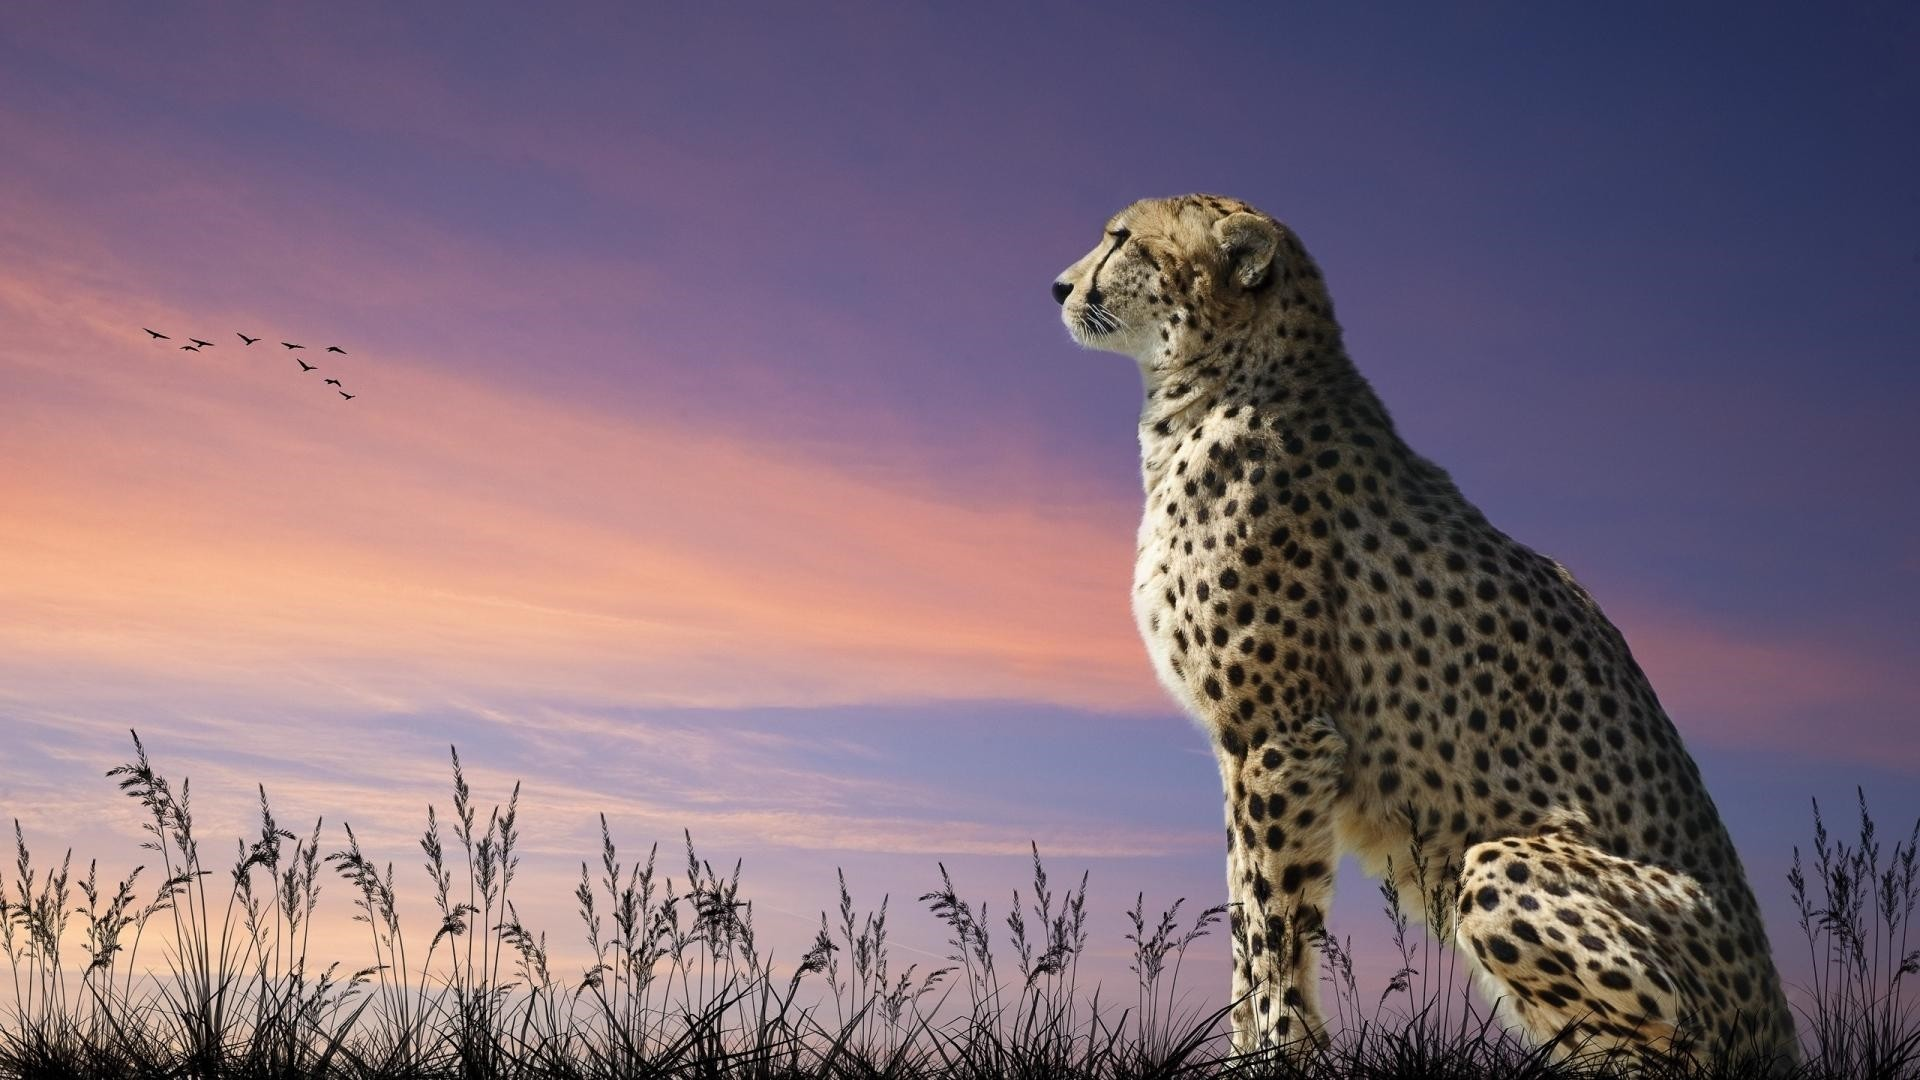 Cheetah hd desktop wallpaper